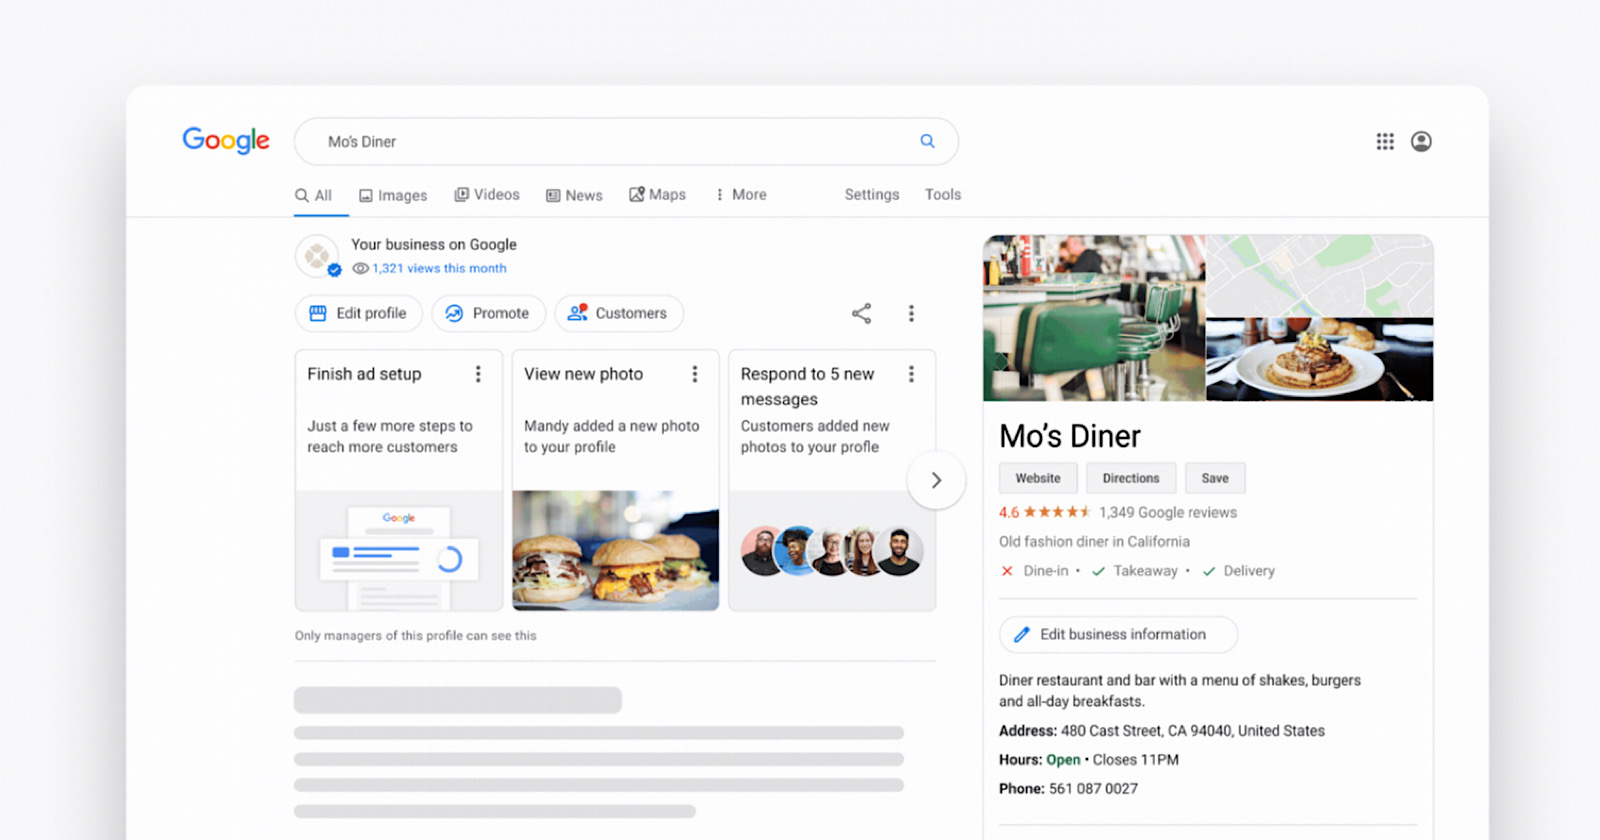 Google My Business: Edit Listings From Search & Maps - Search Engine Journal